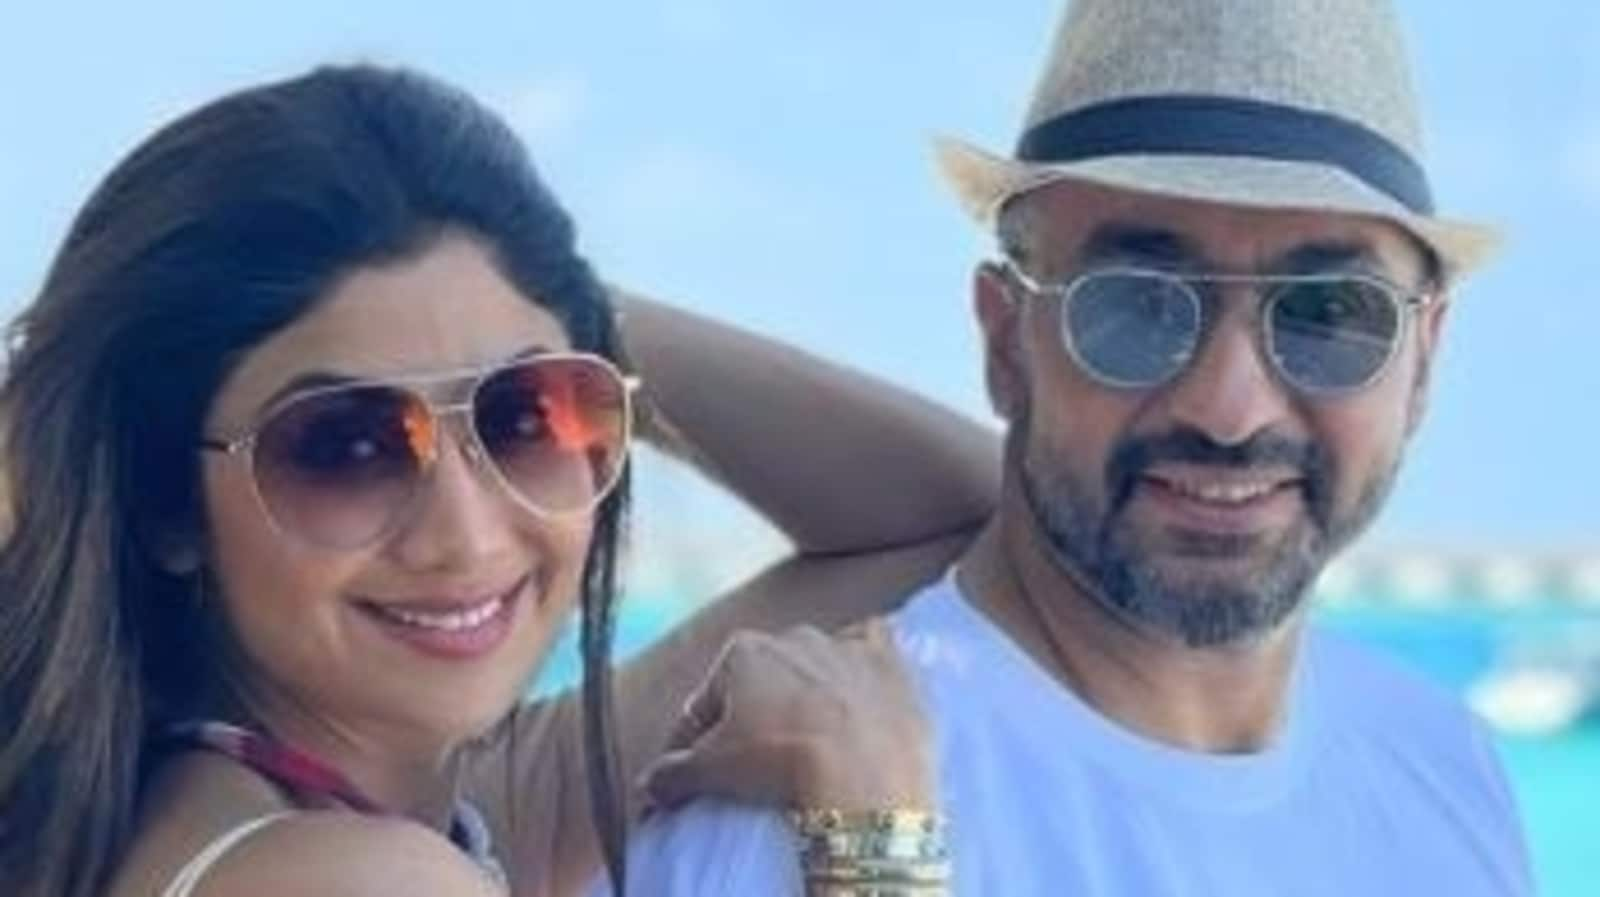 When Raj Kundra showered Shilpa Shetty with gifts but she told him 'nothing could happen between' them - Hindustan Times thumbnail